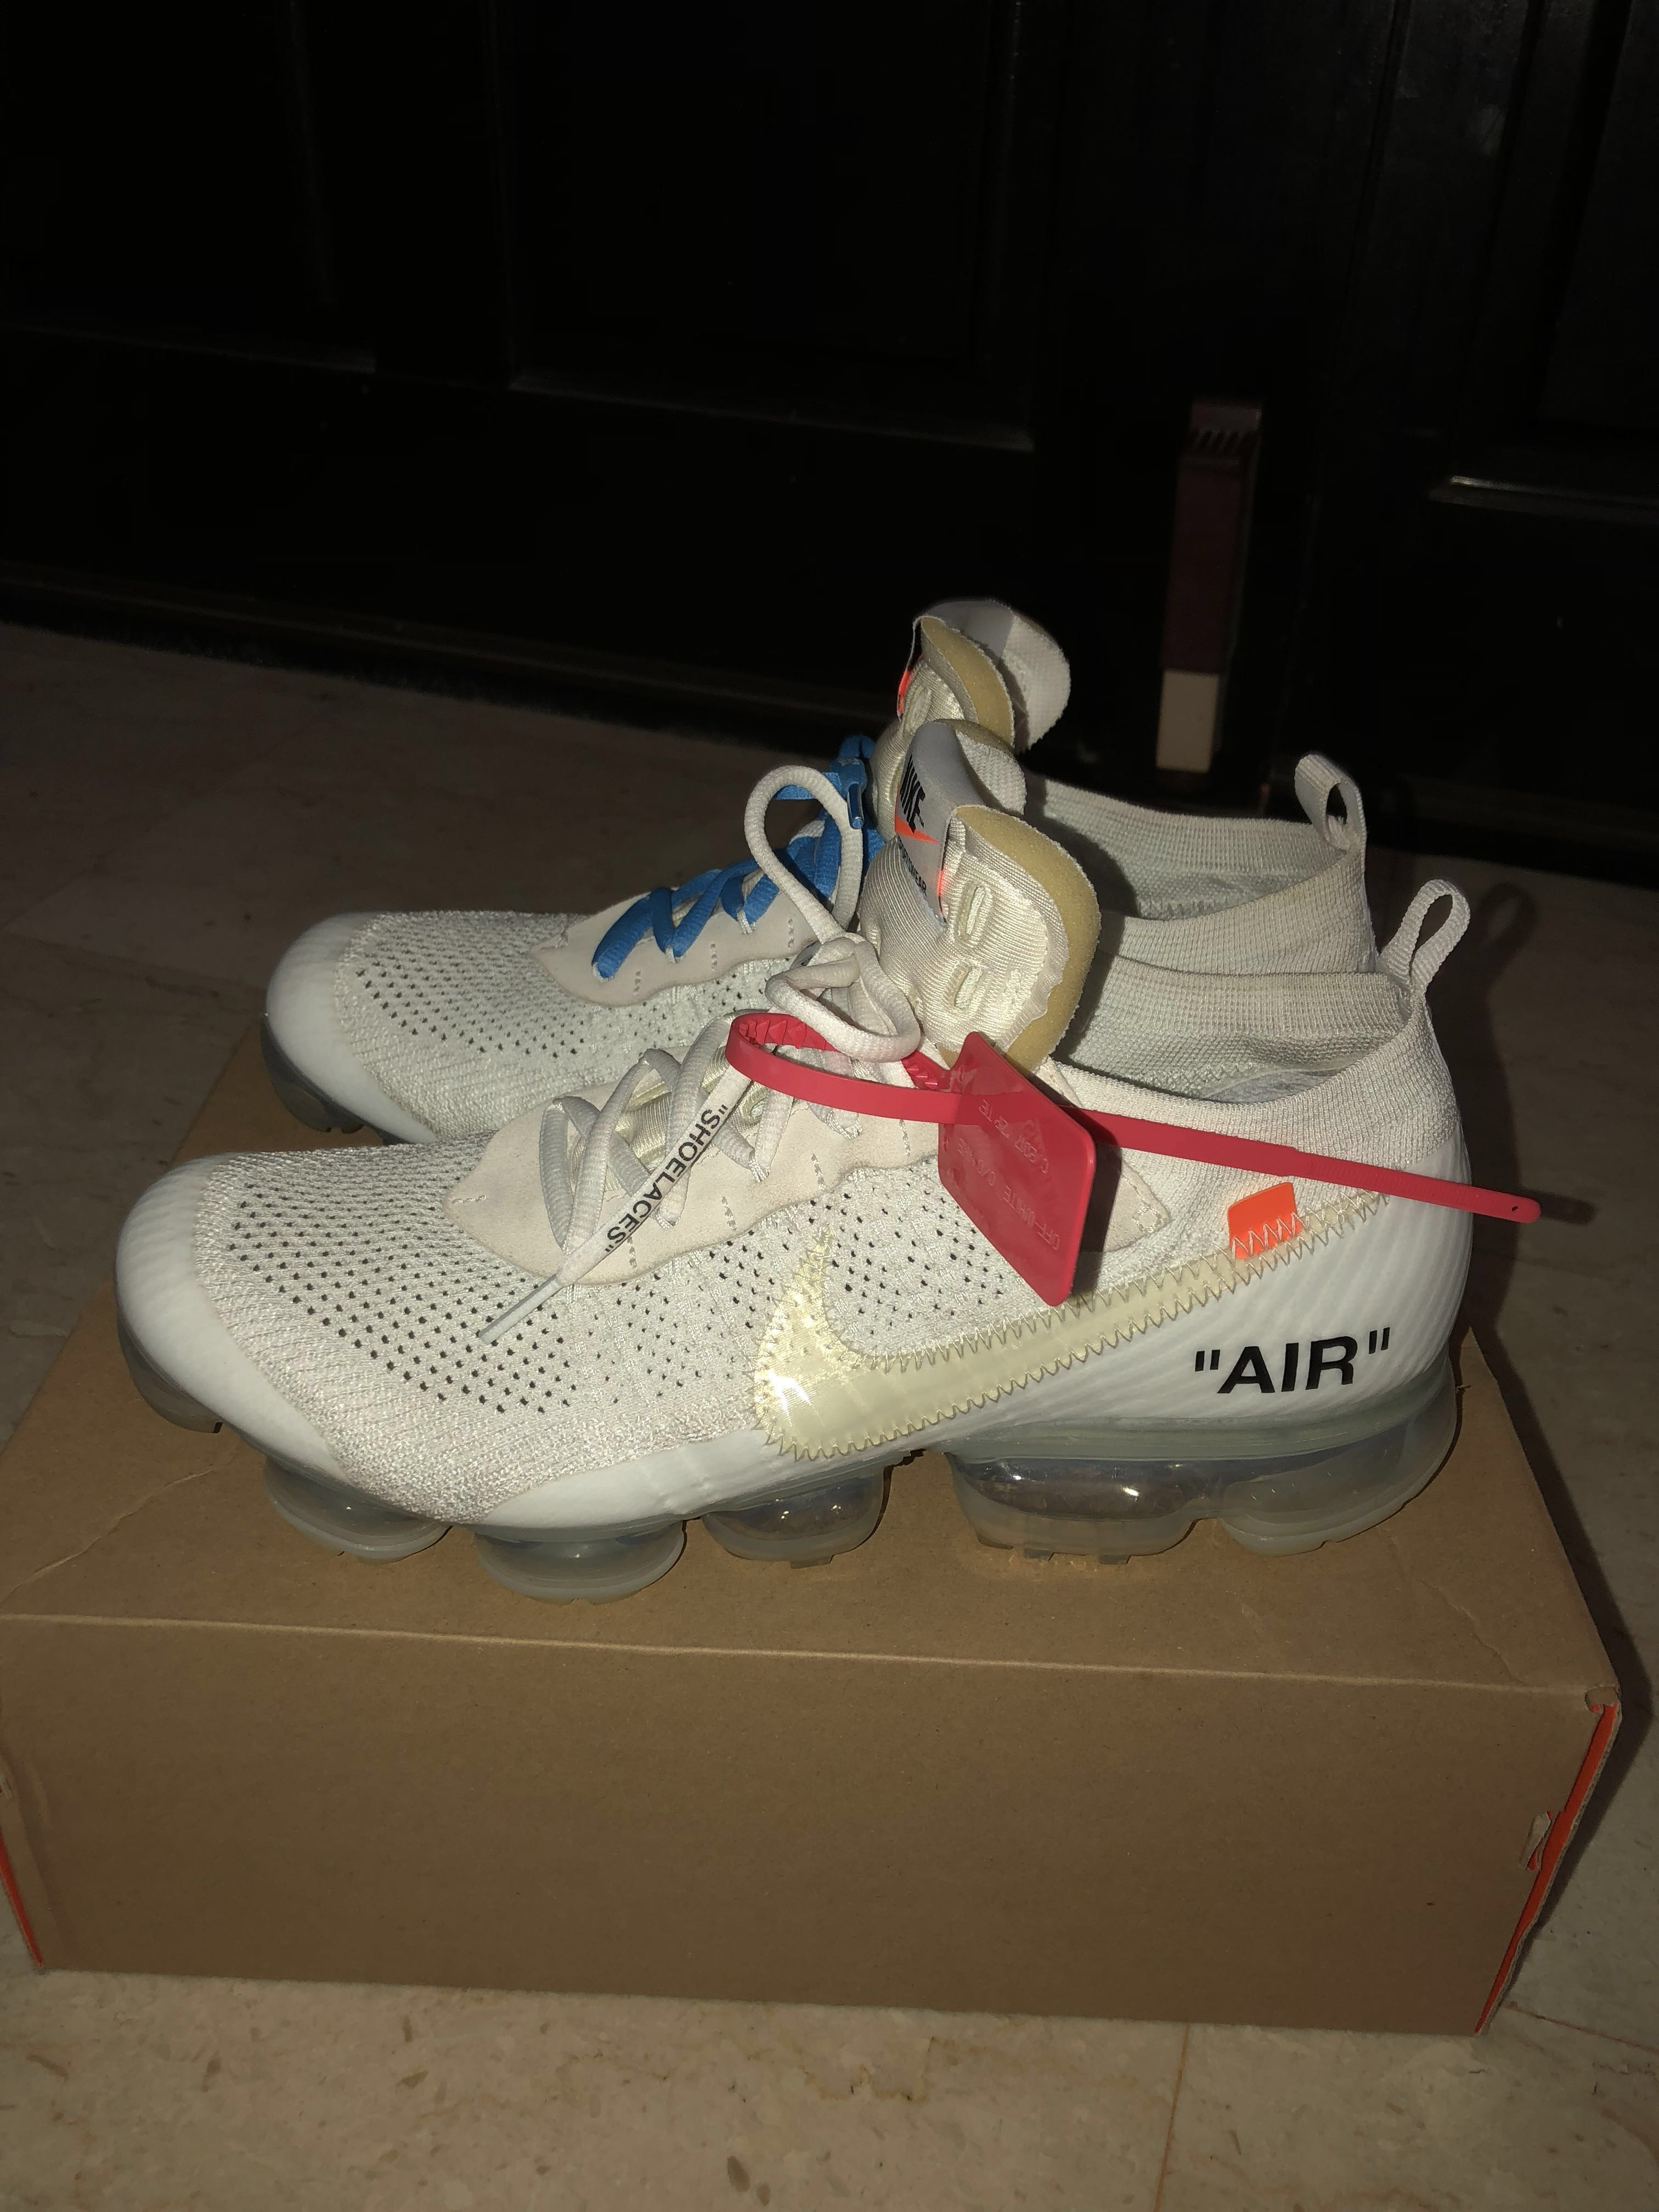 finest selection 54311 495c8 OW Nike Vapormax 2.0 White US11, Men s Fashion, Footwear, Sneakers on  Carousell